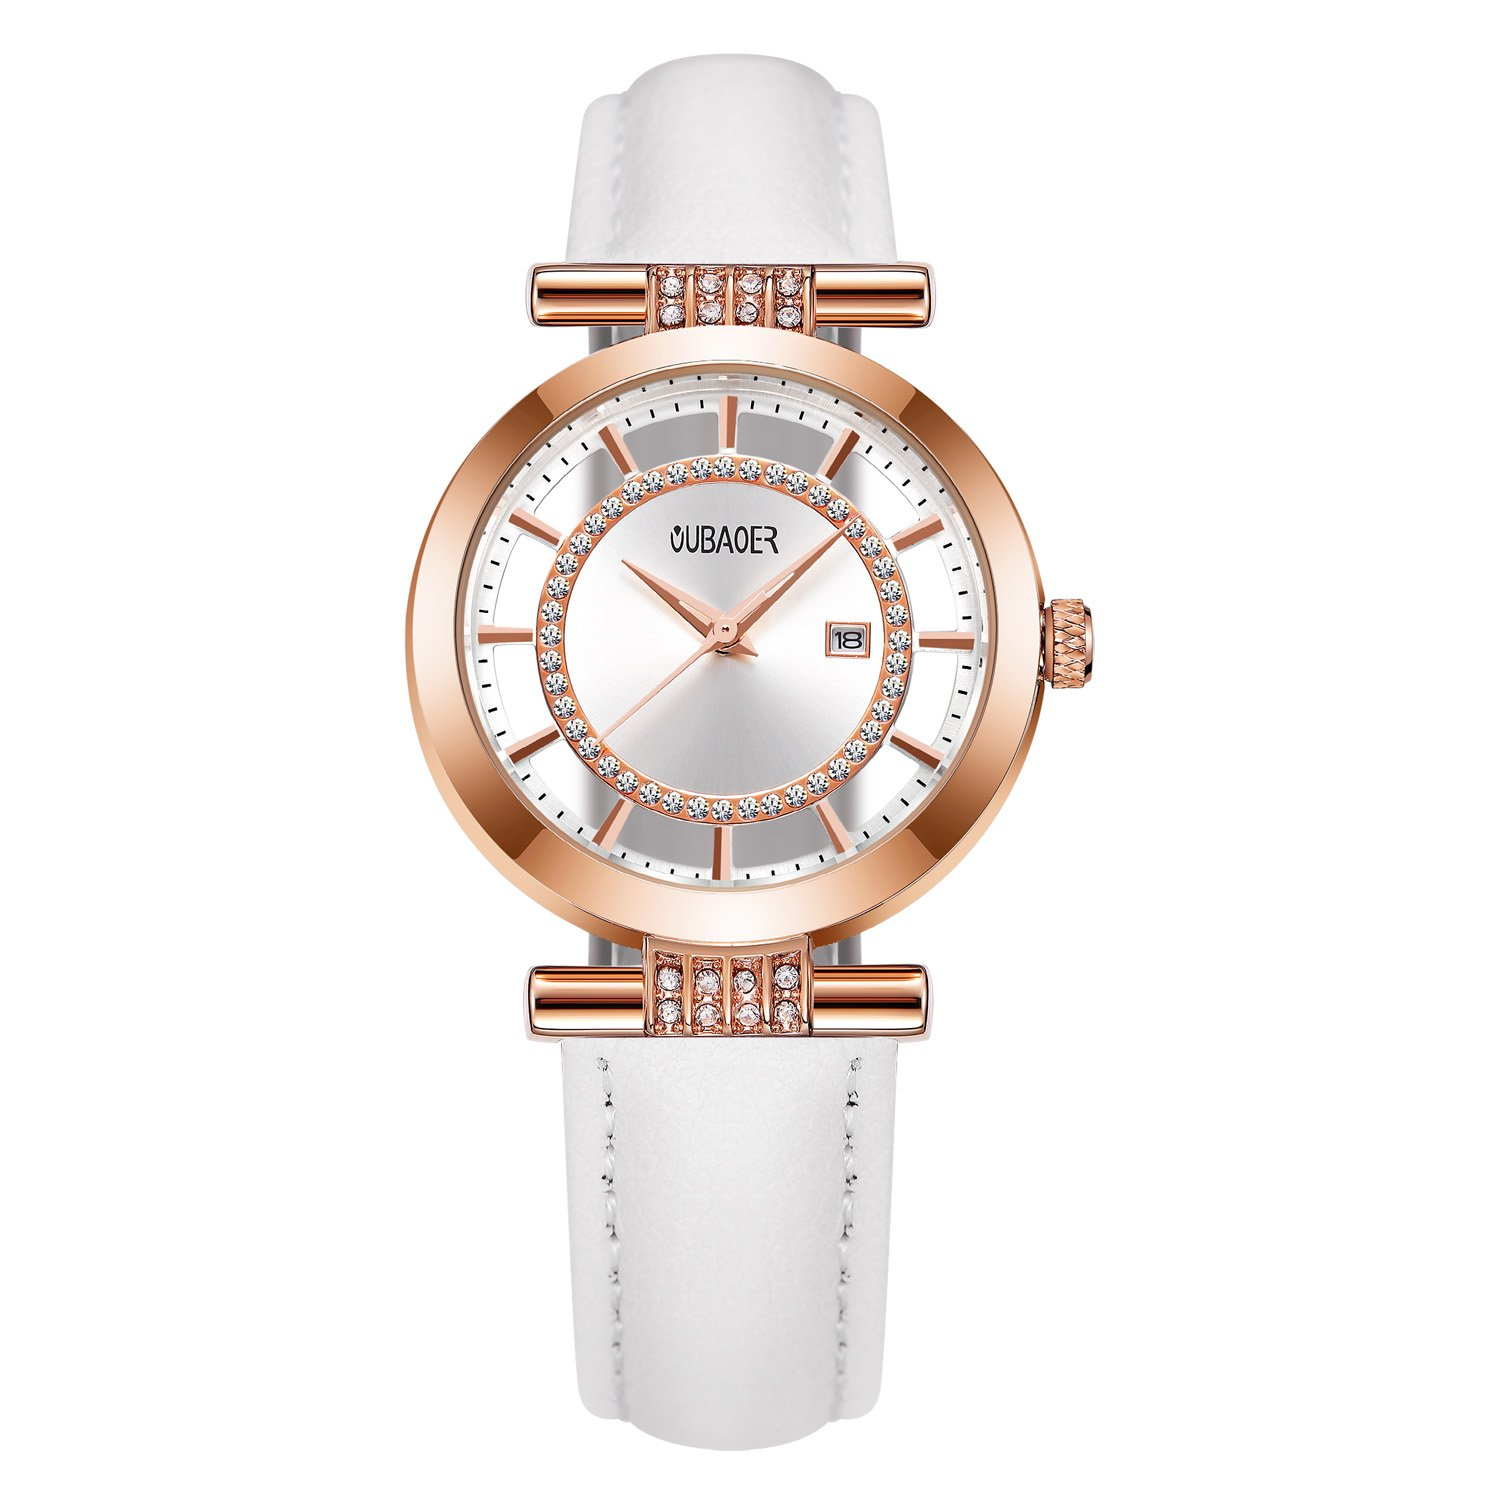 Womens Quartz Watch OUBAOER Crystal Accented Leather Band Watch for Women Transparent Watch with Date Lady Wristwatches for Business(Rose White)